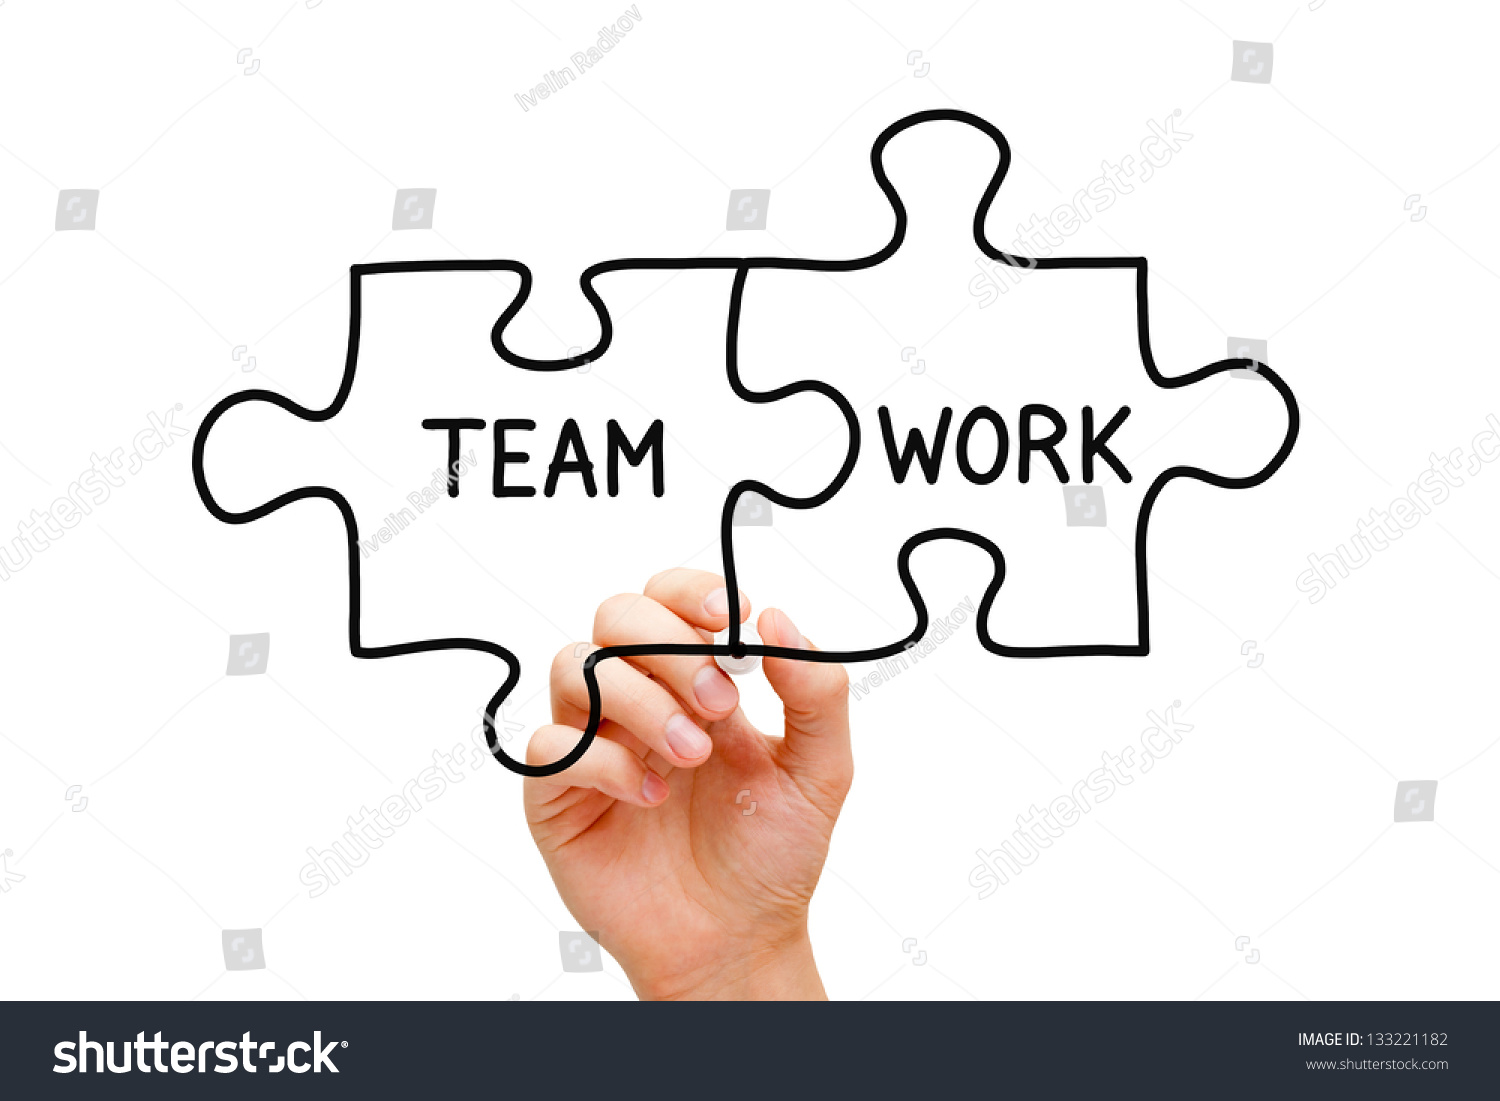 hand sketching teamwork jigsaw puzzle pieces stock photo  hand sketching teamwork jigsaw puzzle pieces concept black marker on transparent glass board